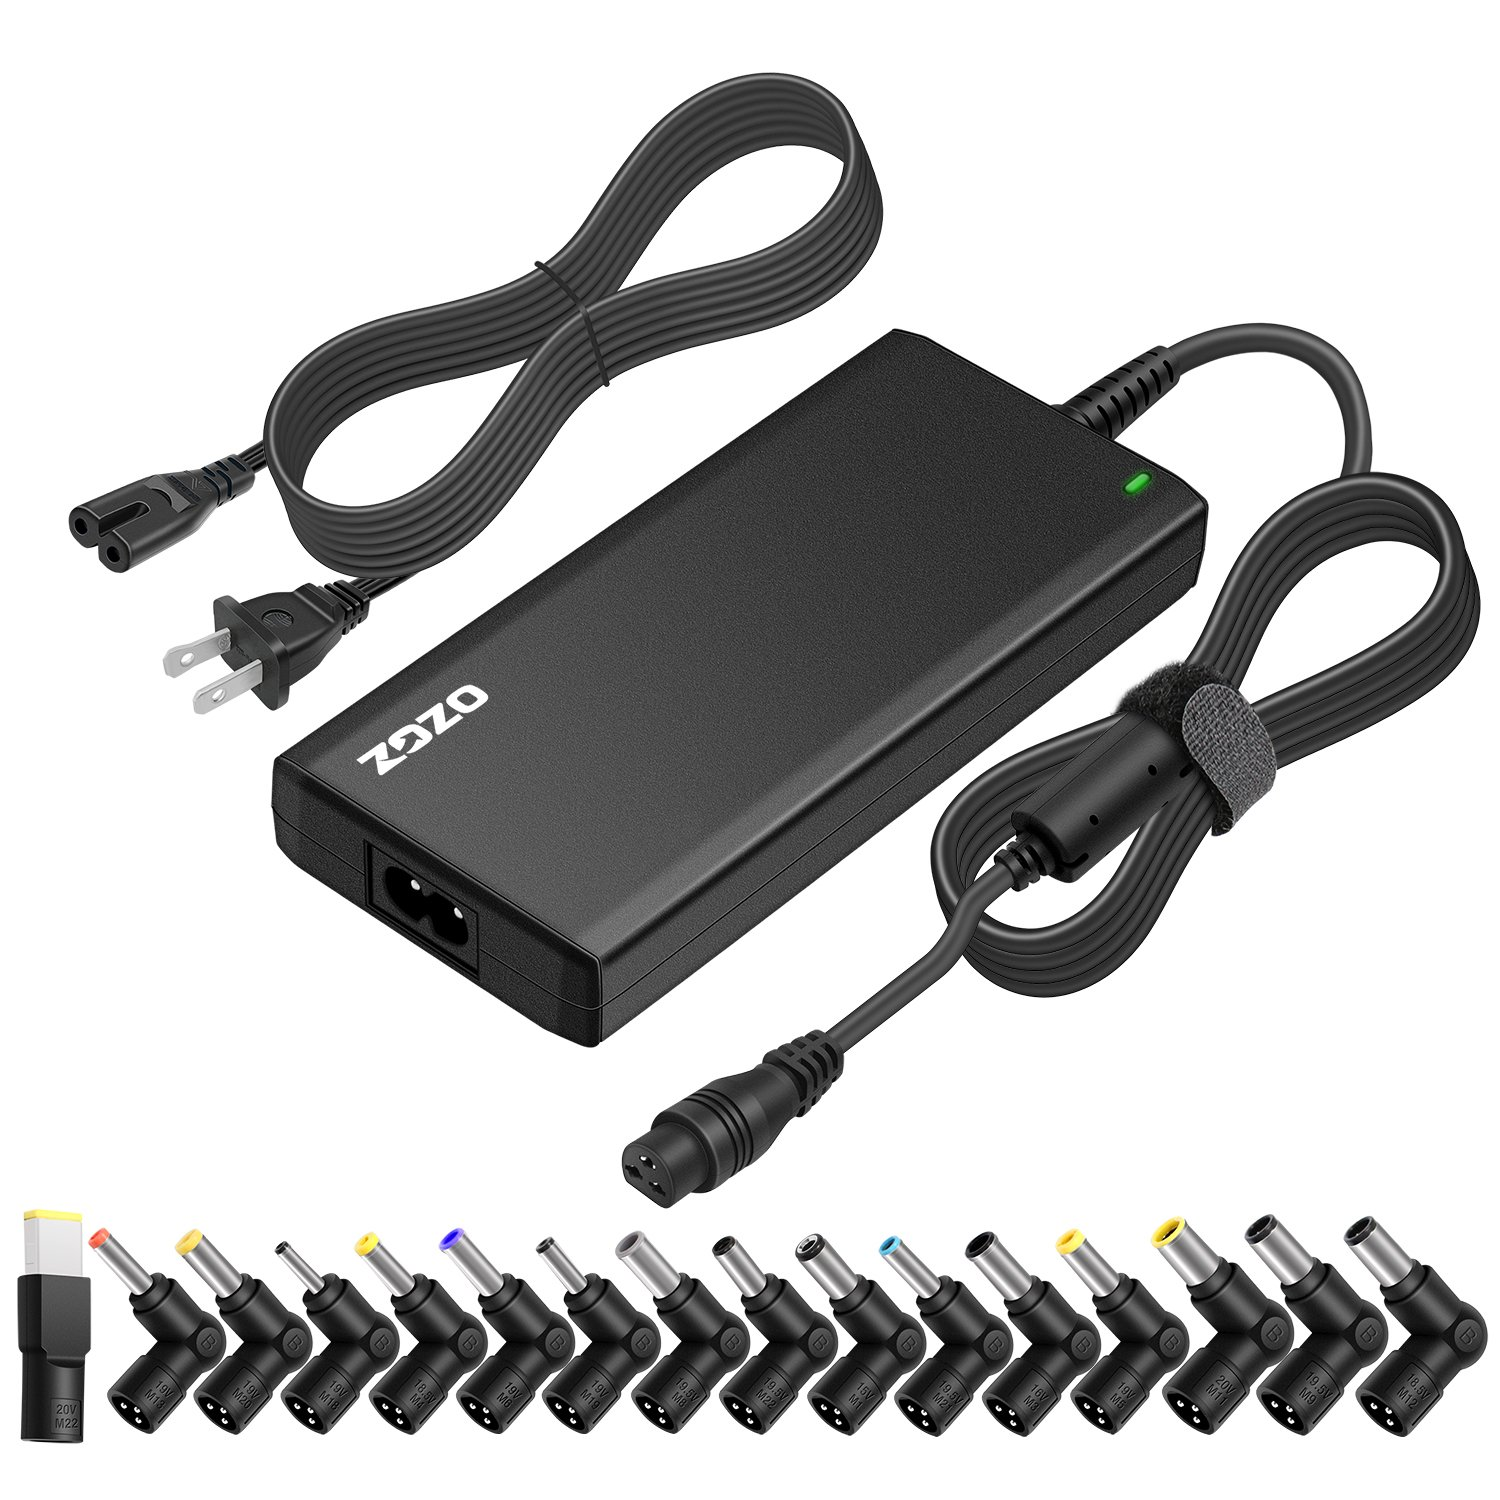 ZOZO 70W 15-20V Slim Universal Laptop Power Adapter Charger for Acer Asus Toshiba Dell Lenovo IBM HP Compaq Samsung Sony Gateway Fujitsu Ultrabooks ...